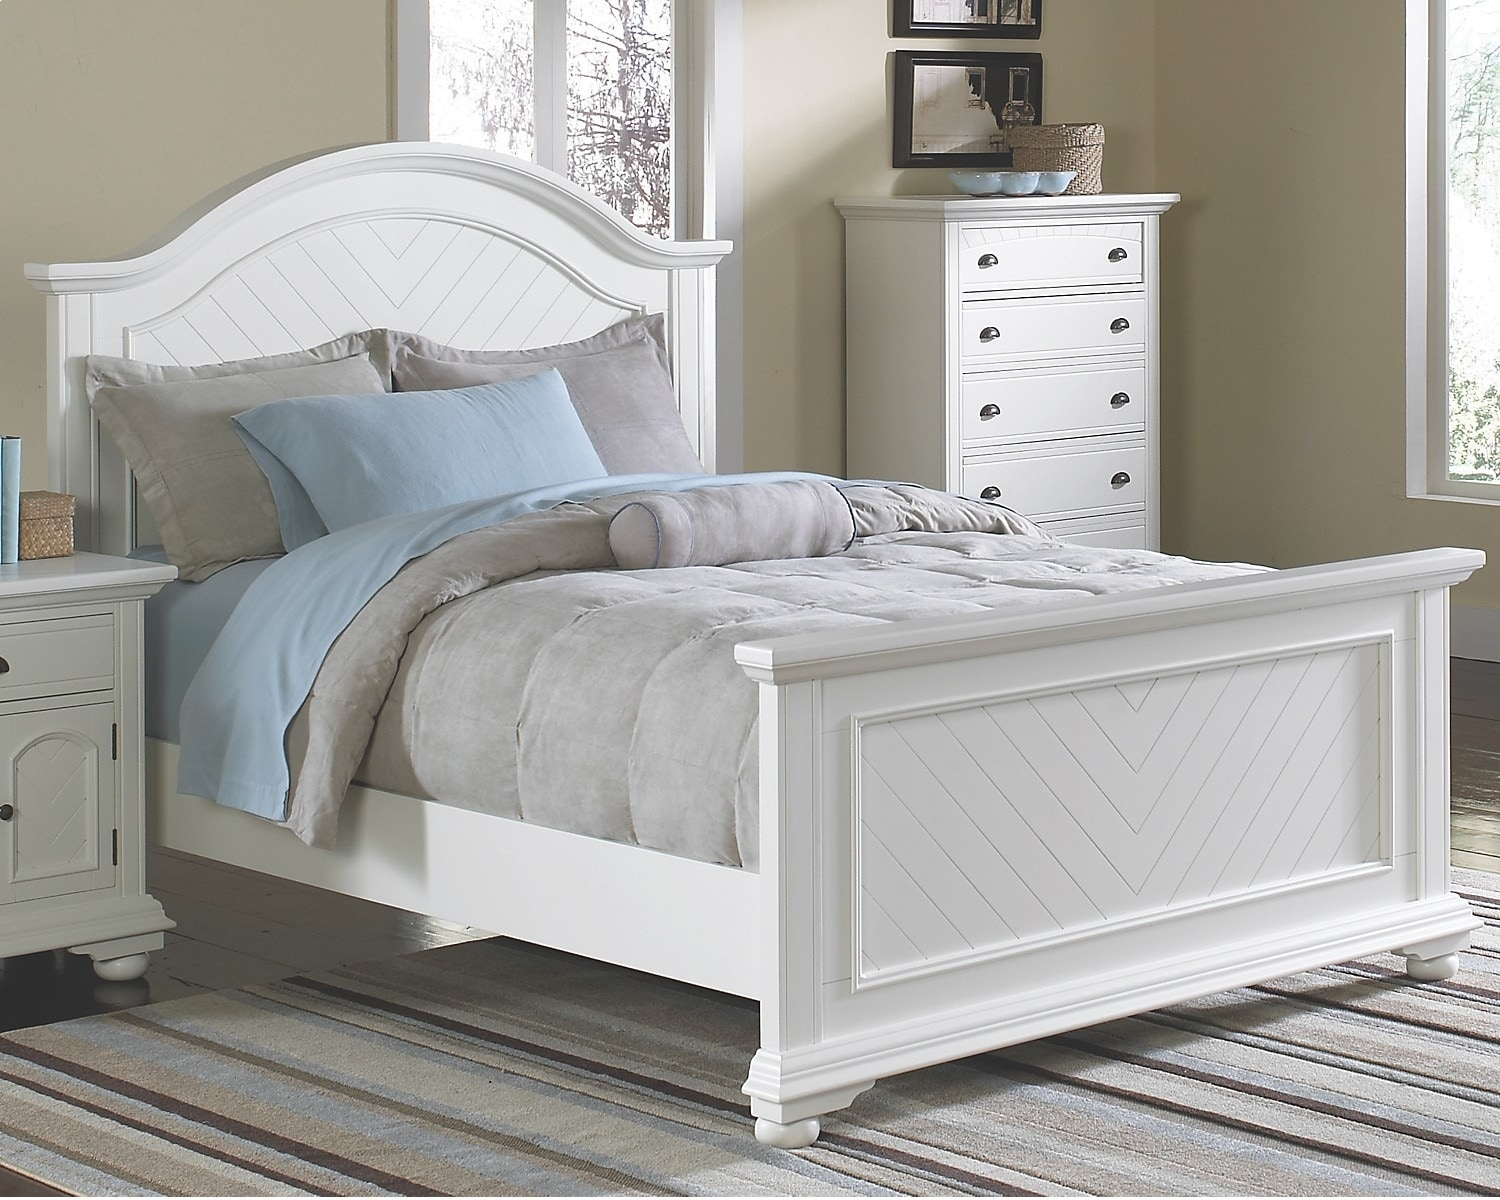 Bedroom Furniture - Casey Off White King Bed